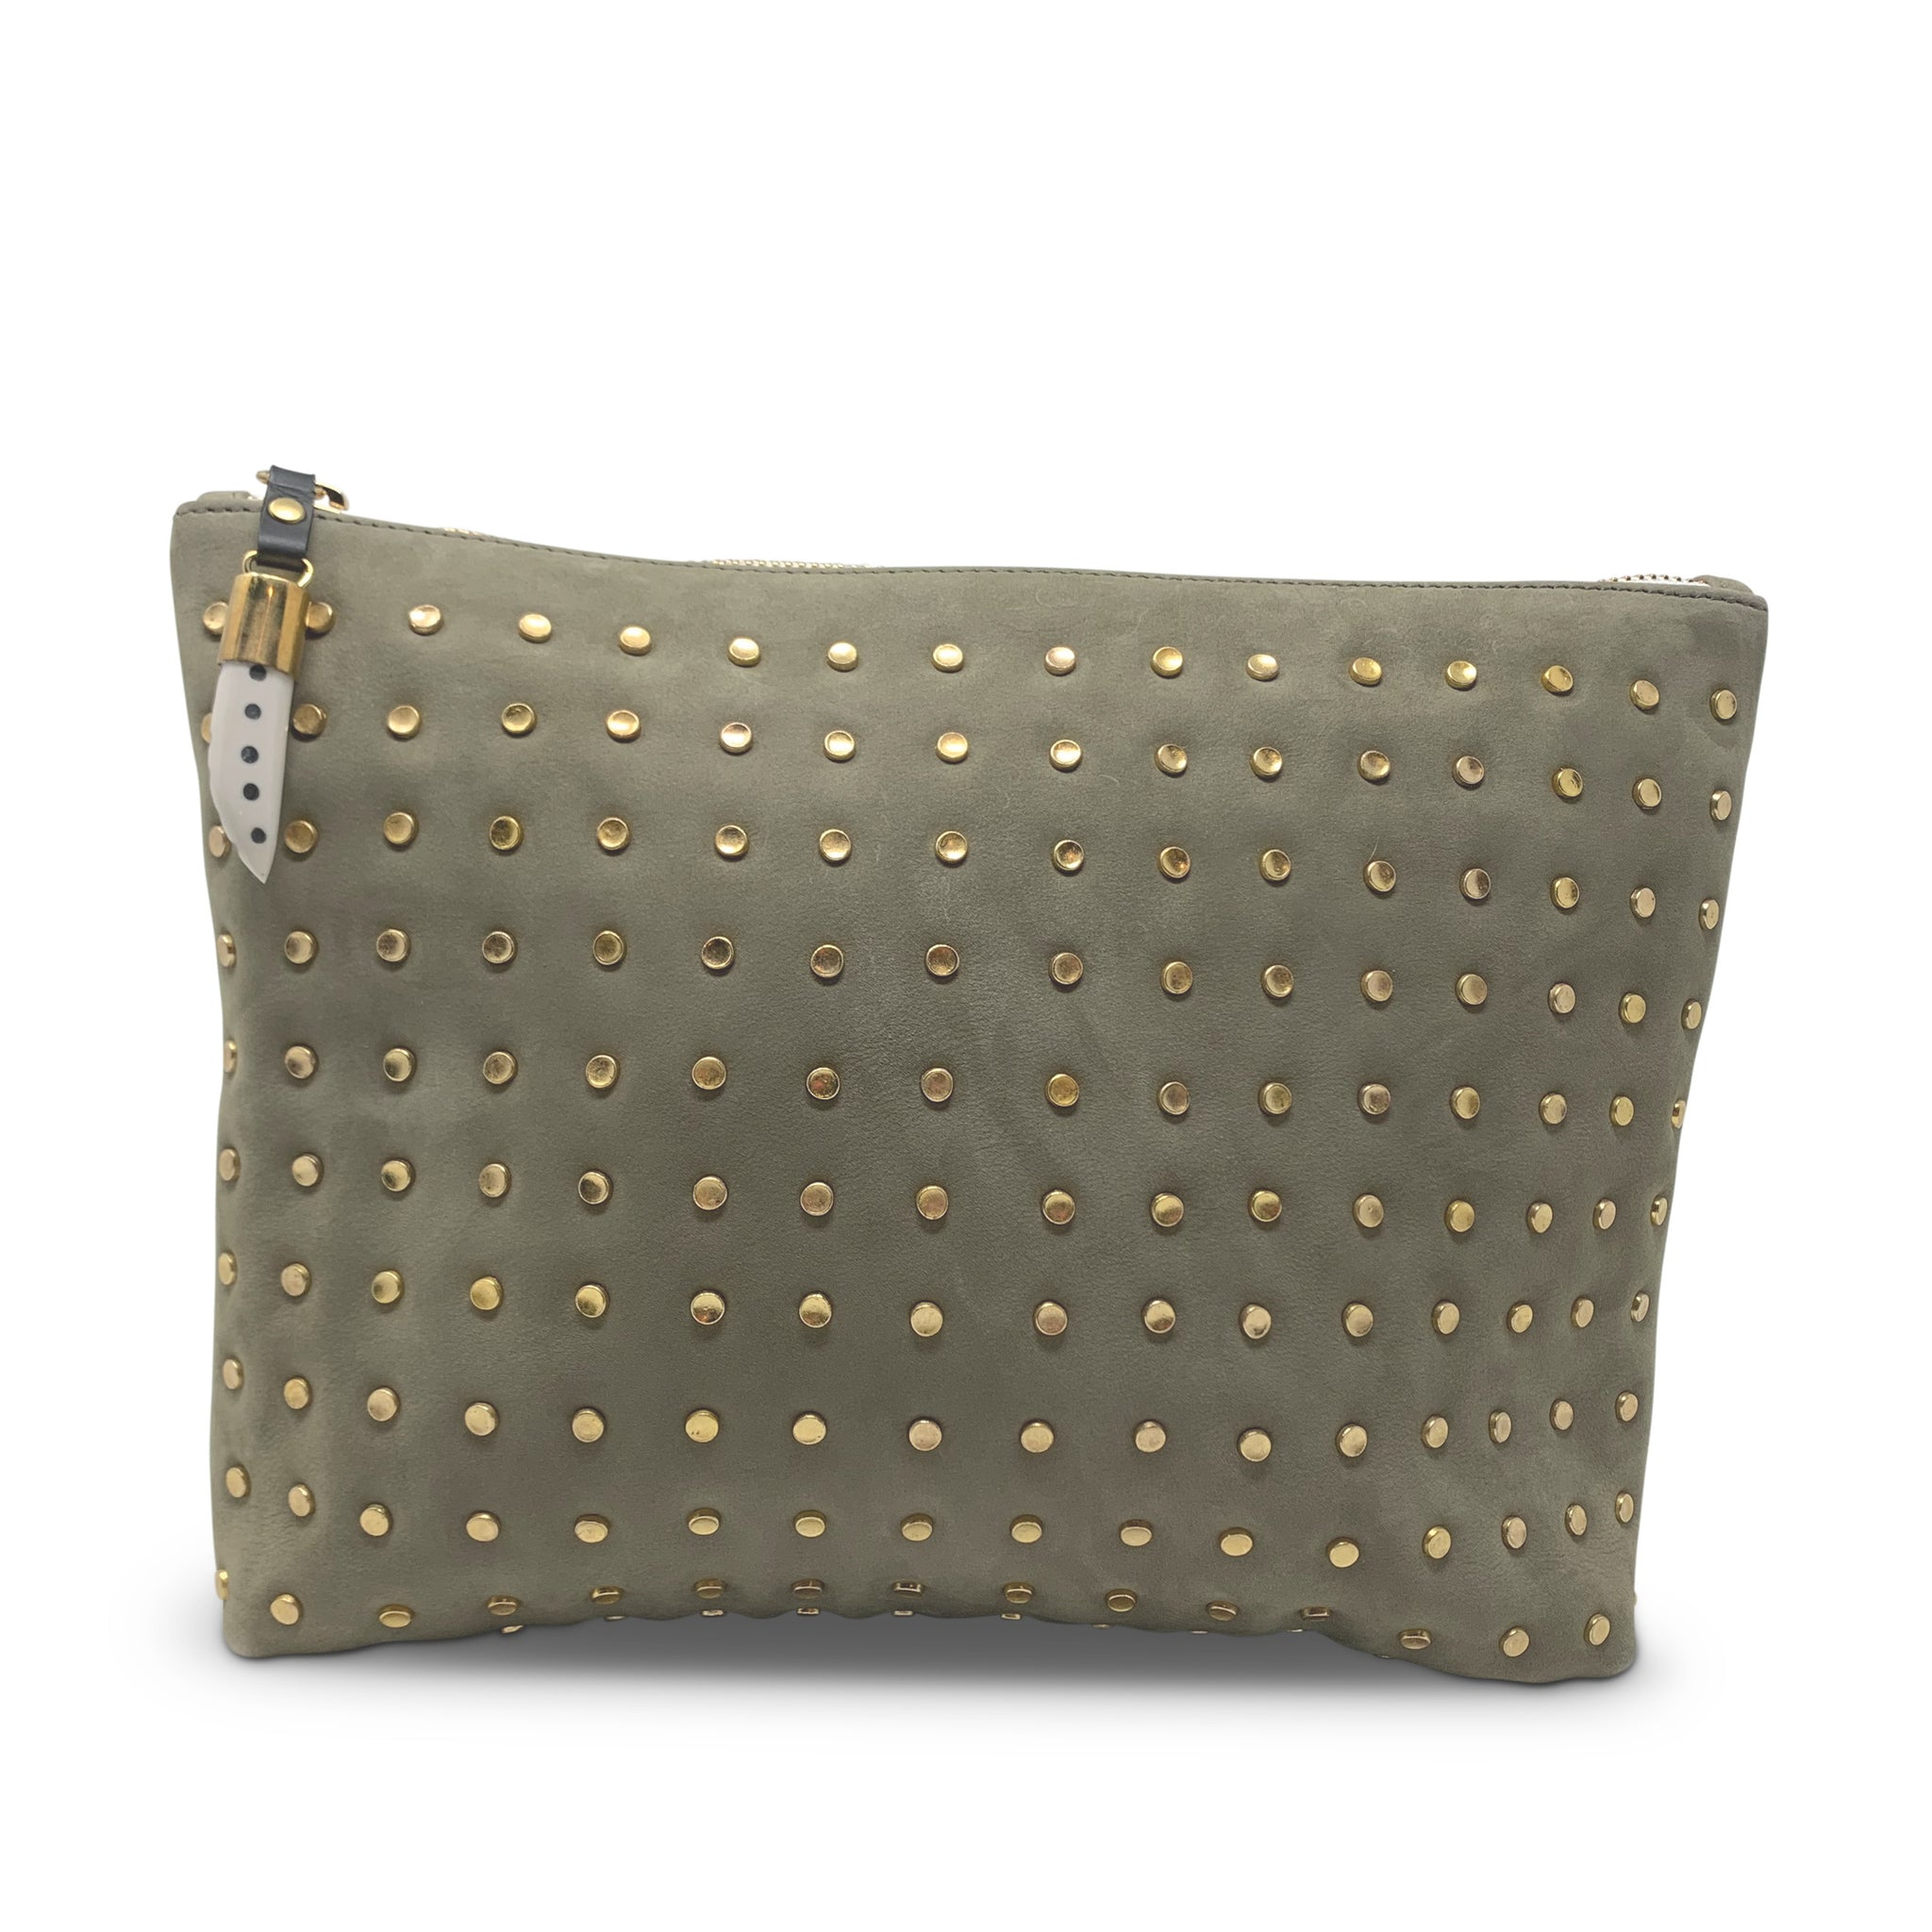 Compton & Co. Medium Driftwood Studded Pouch